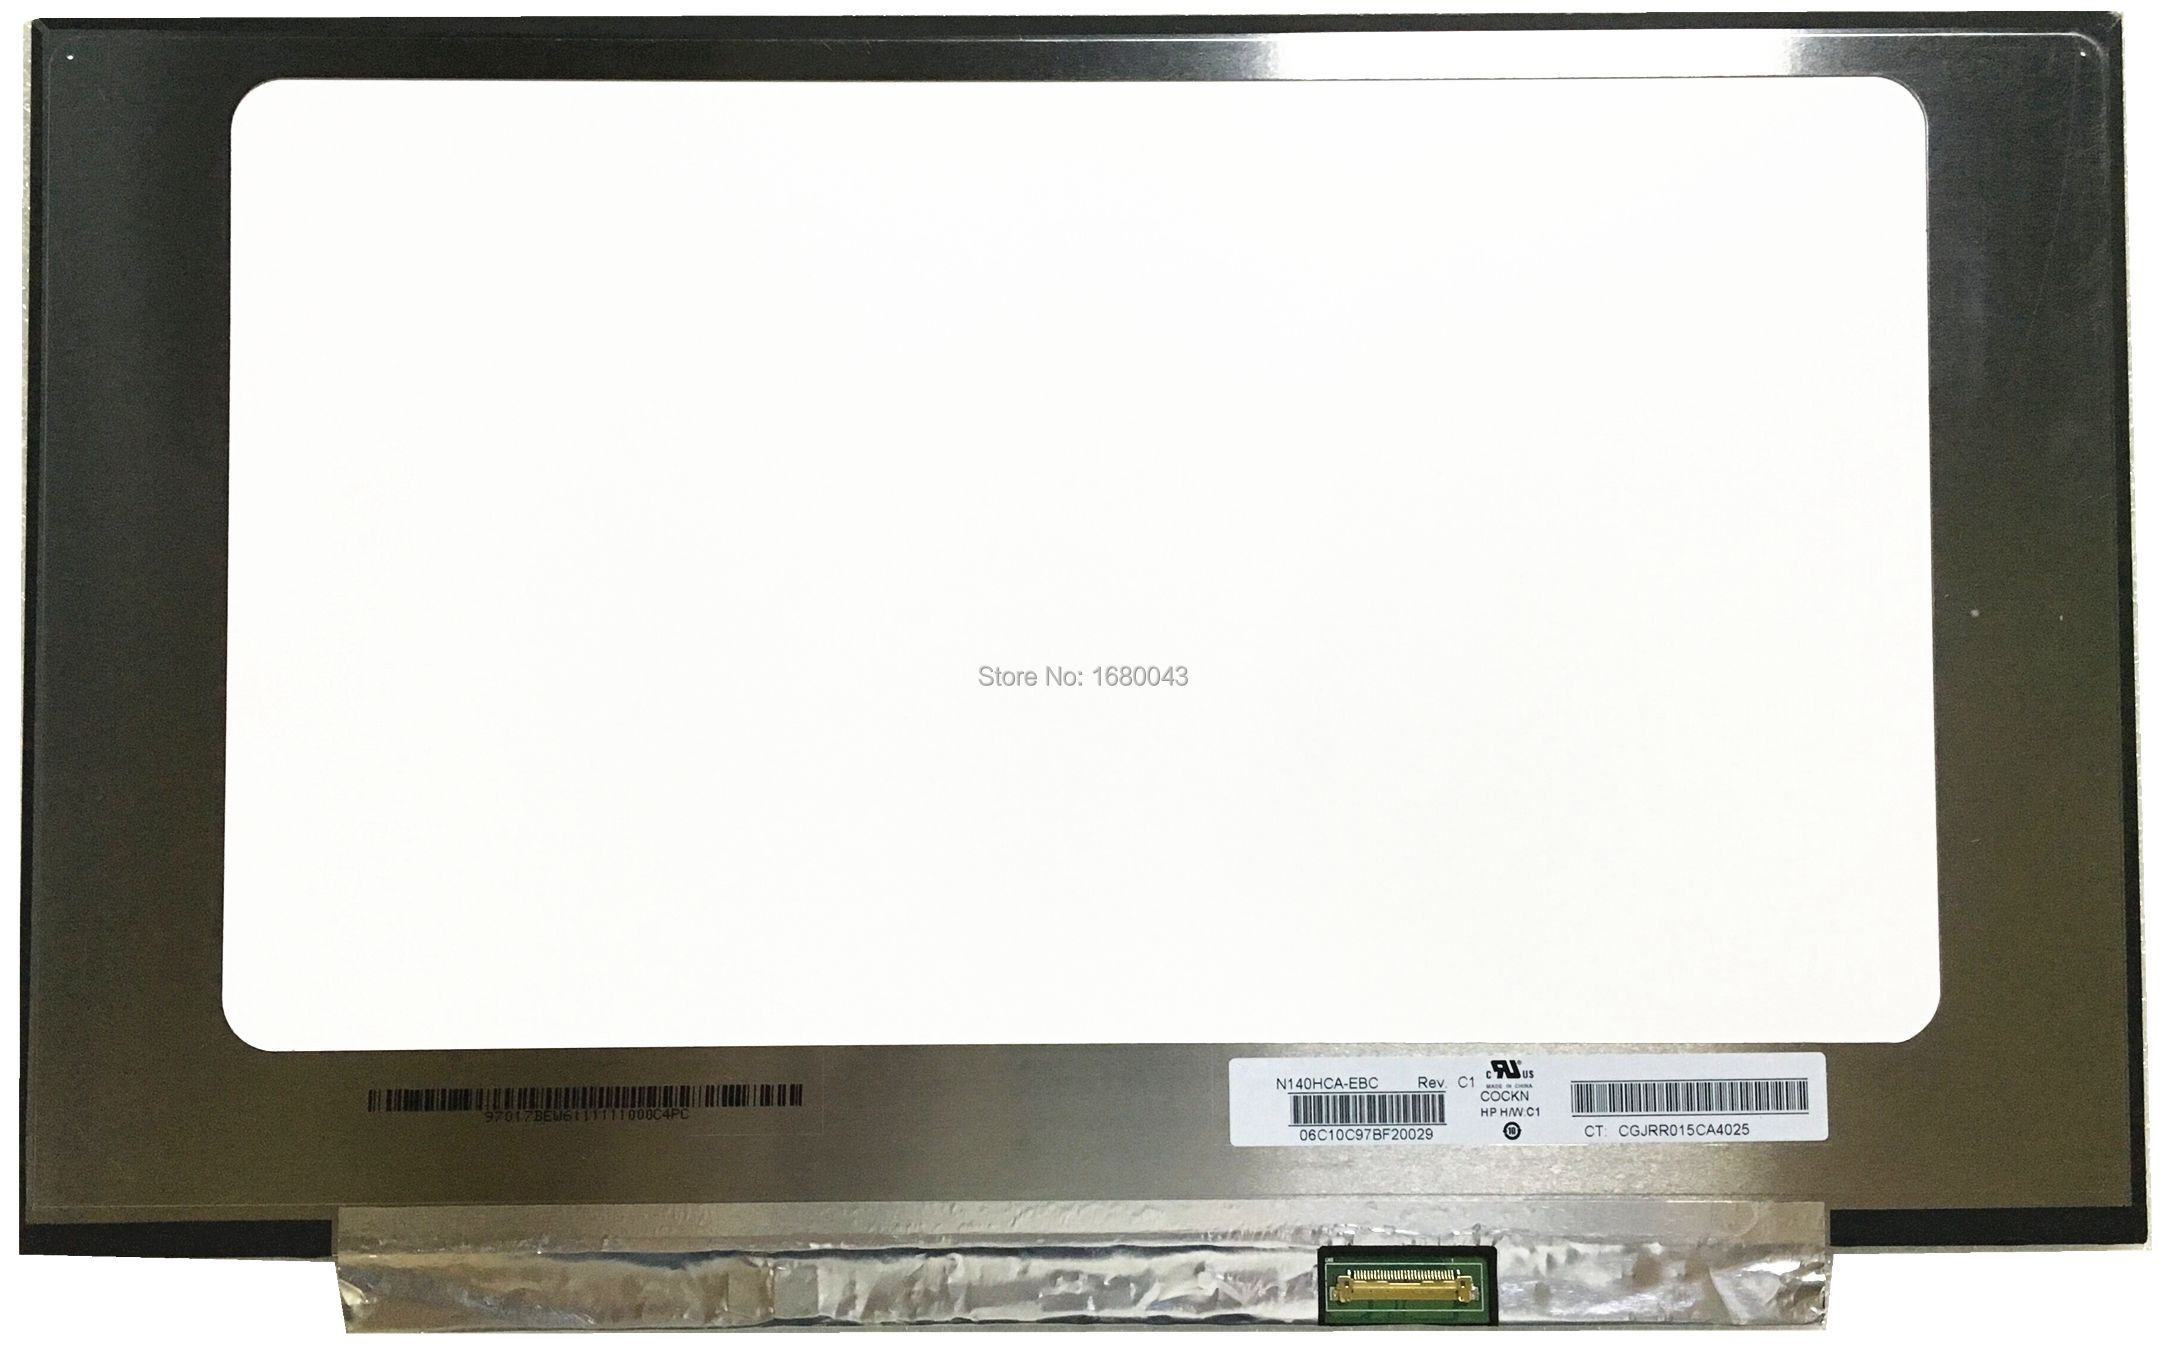 N140HCA-EBC N140HCA EBC 30 pin EDP IPS LCD Laptop LED Display Screen 1920X1080 free shipping original new n140hca eba n140hca eba 14 inch laptop lcd screen